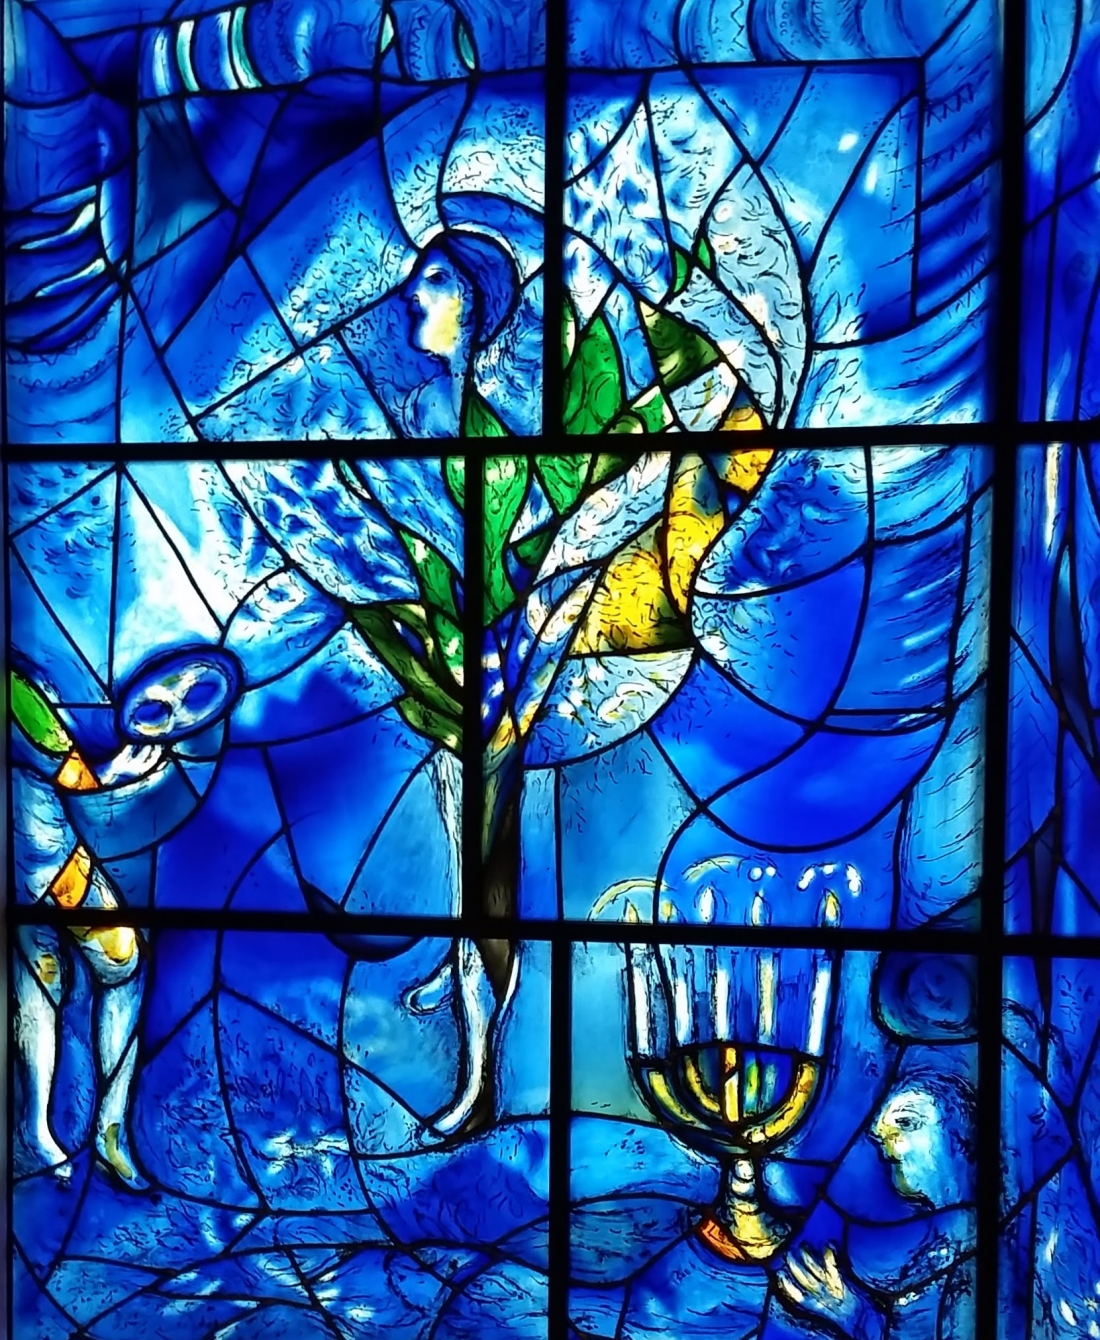 Visiting the Chagall Windows, The Art Institute of Chicago. Shot with a Samsung Galaxy S5